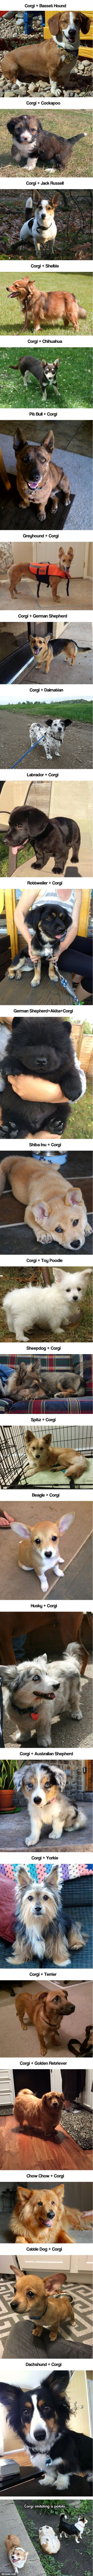 best animals images on pinterest adorable animals cute dogs